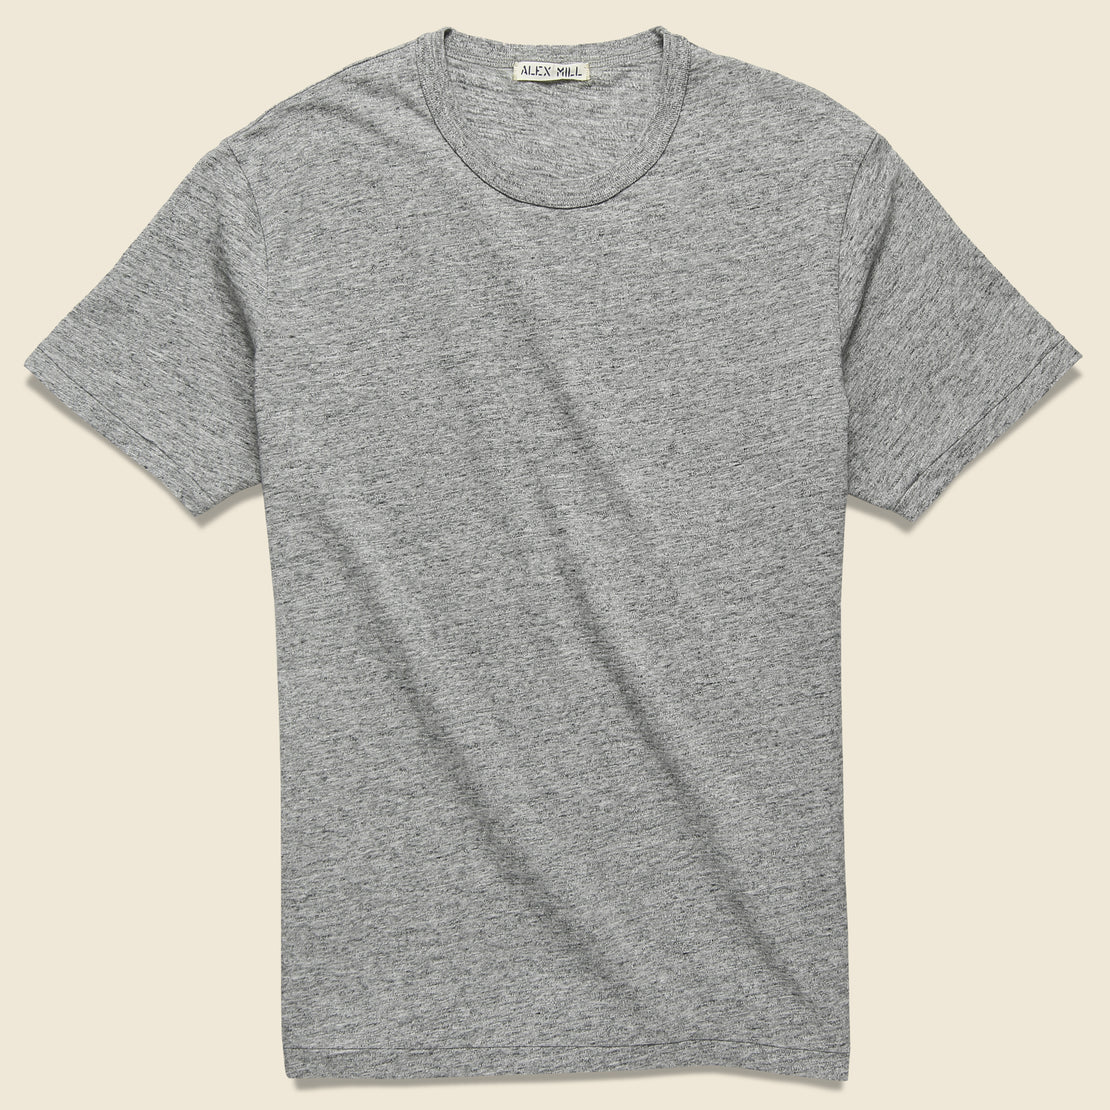 Alex Mill New Standard Crew Tee - Heather Grey